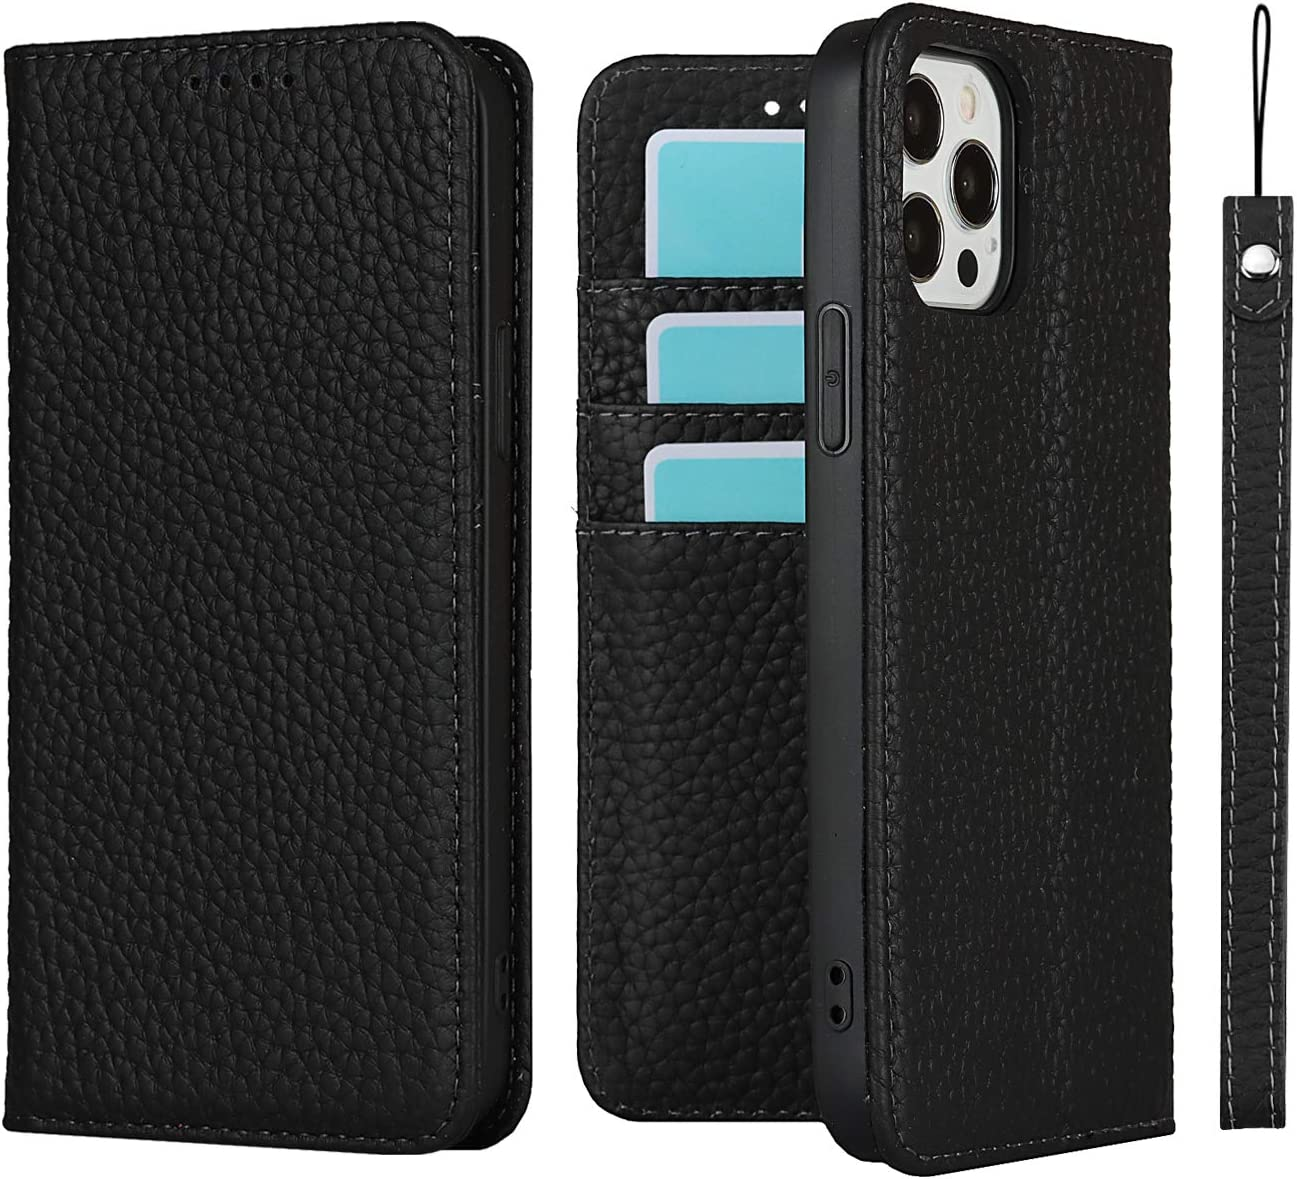 iCoverCase for iPhone 12 Pro Max Wallet Case for Men Women Genuine Leather RFID Blocking Credit Card Holder, Flip Folio Book Magnetic Cell Phone Cover for iPhone 12 Promax Leather Case (All Black)